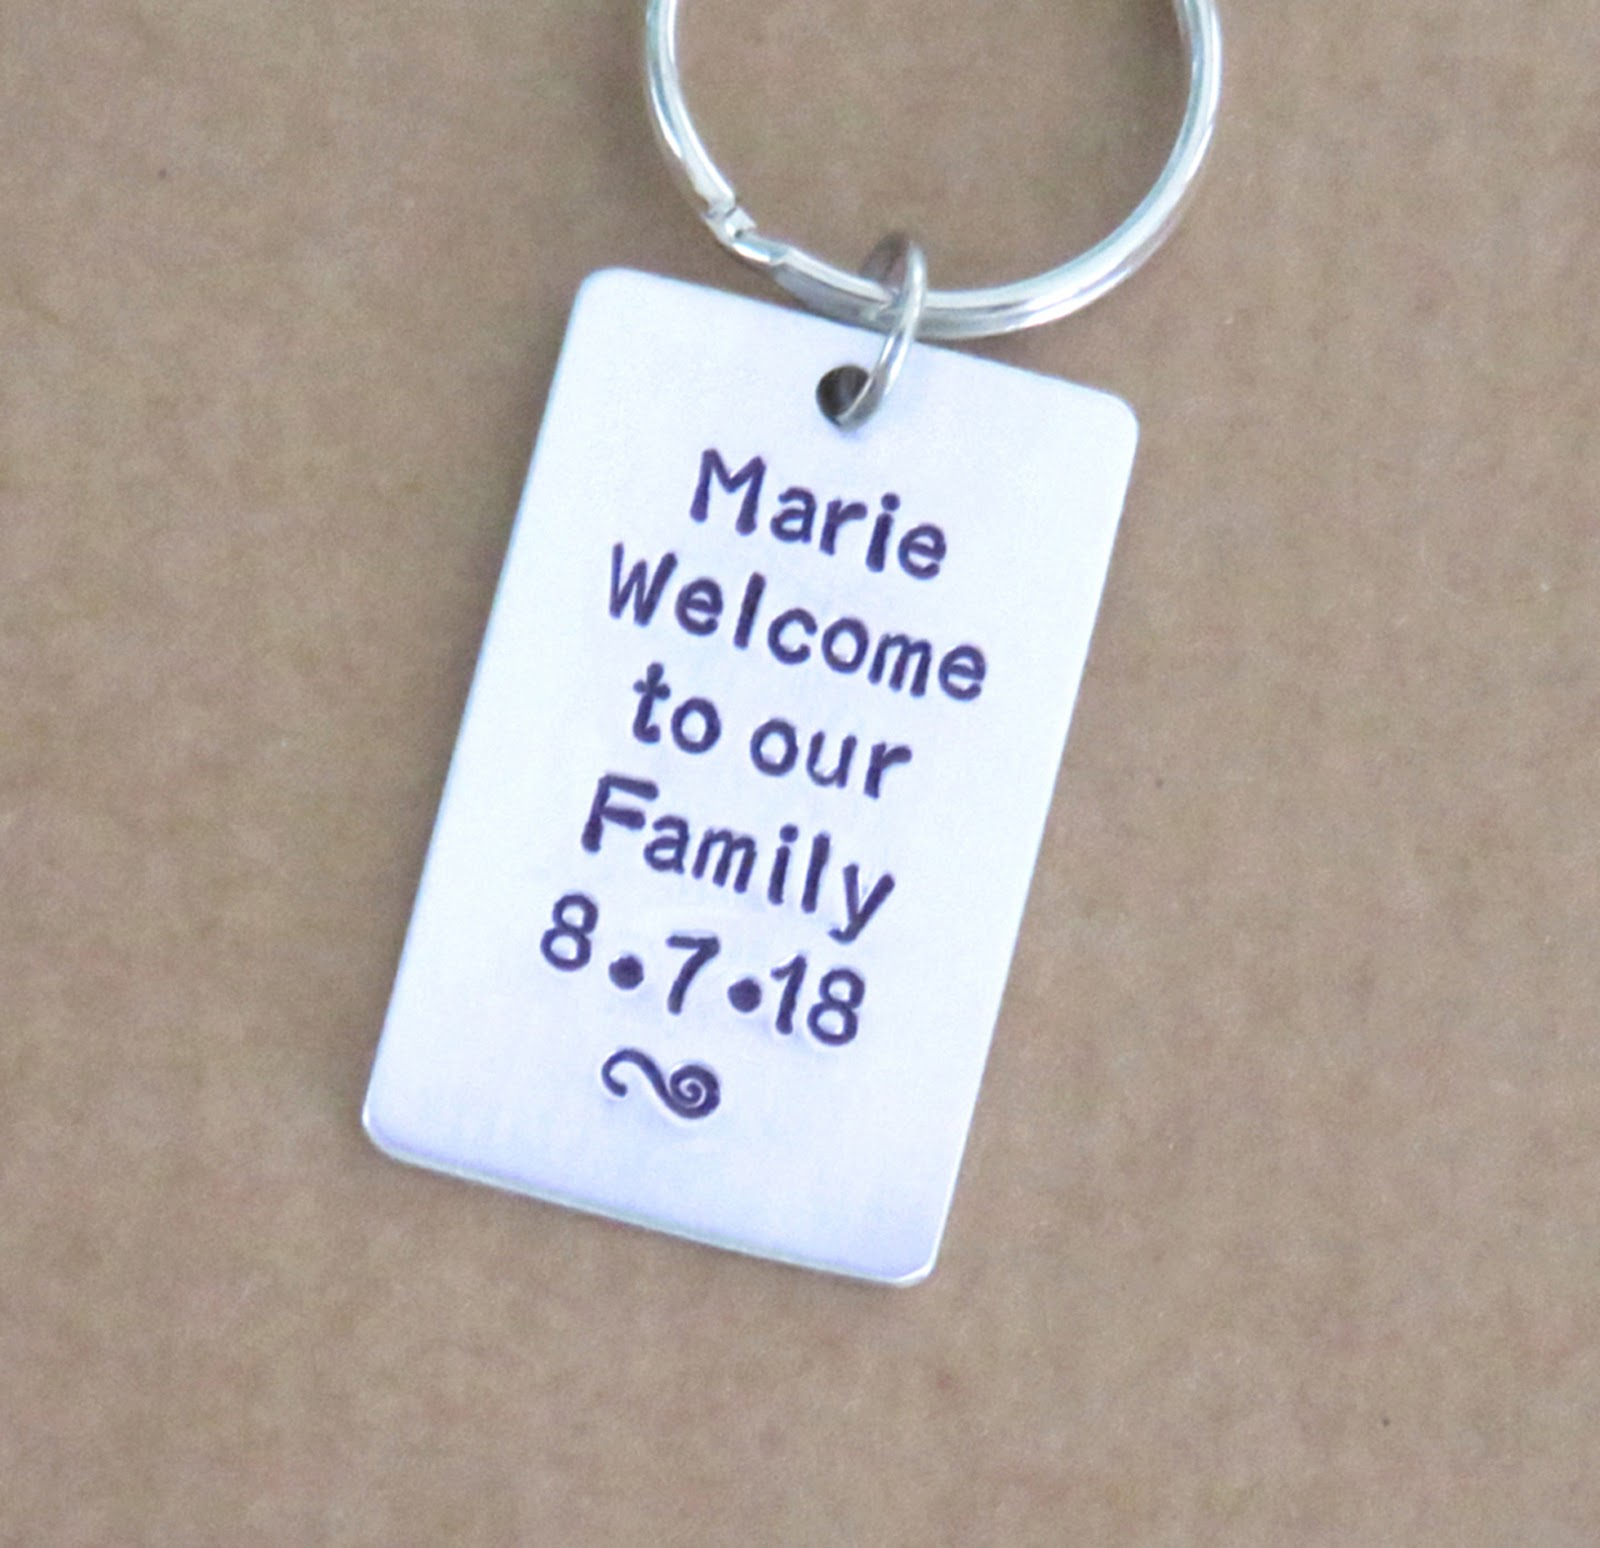 Stamped Personalized Wedding Gifts Jewelry Key Chains Funny Cards